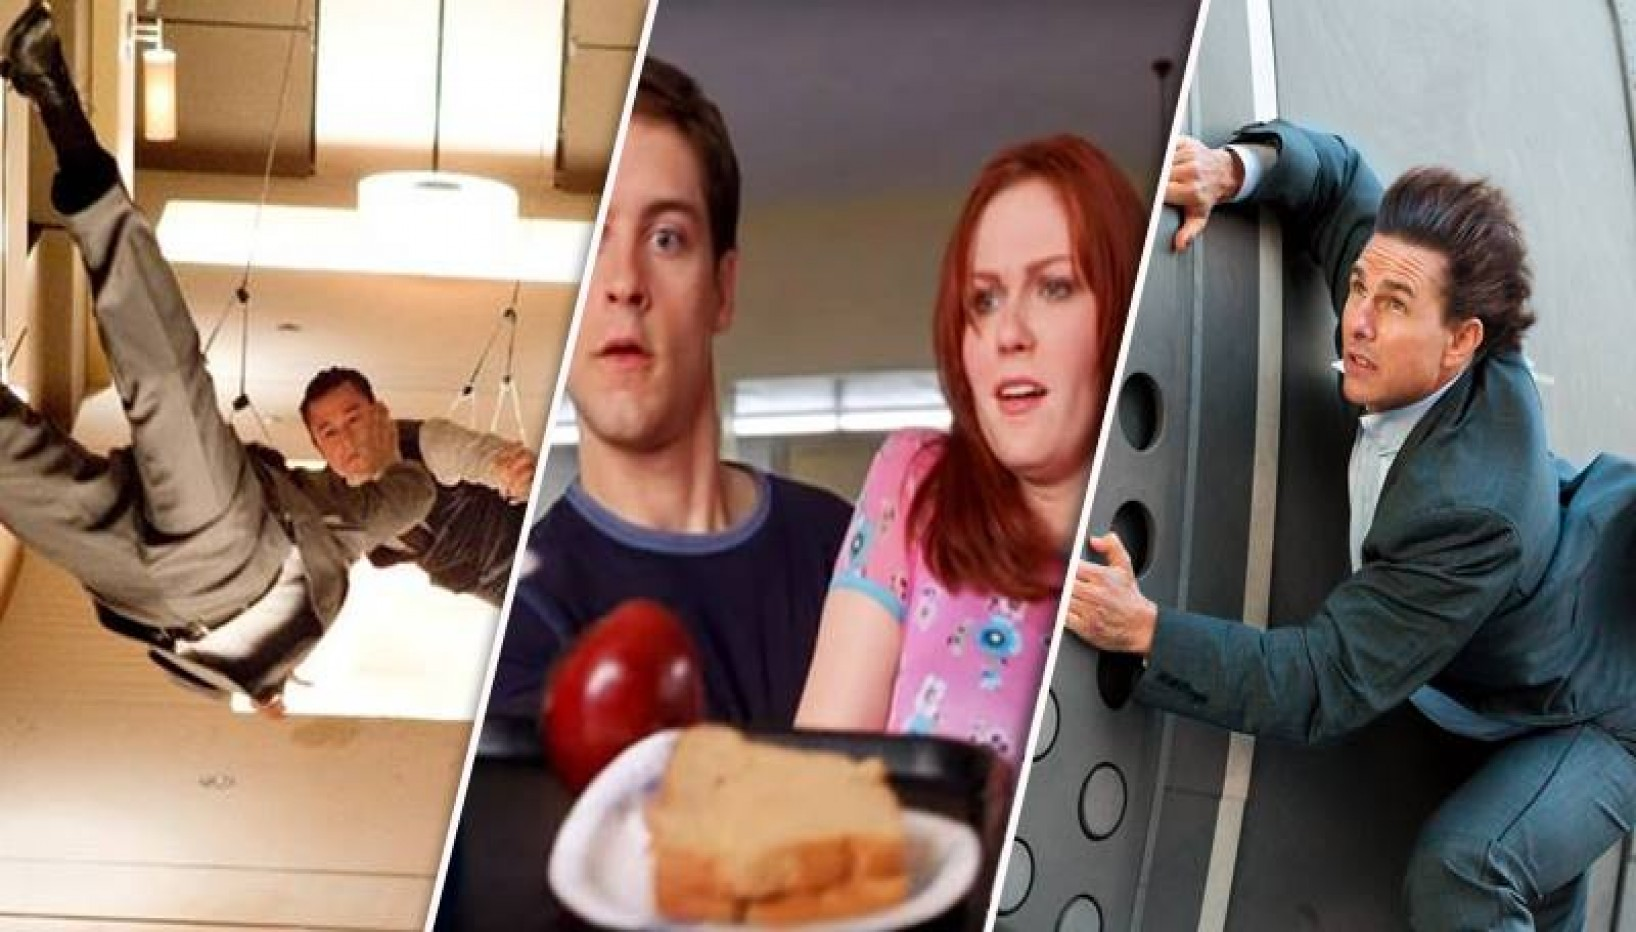 11 Movie Scenes That You Thought Were CGI But Aren't